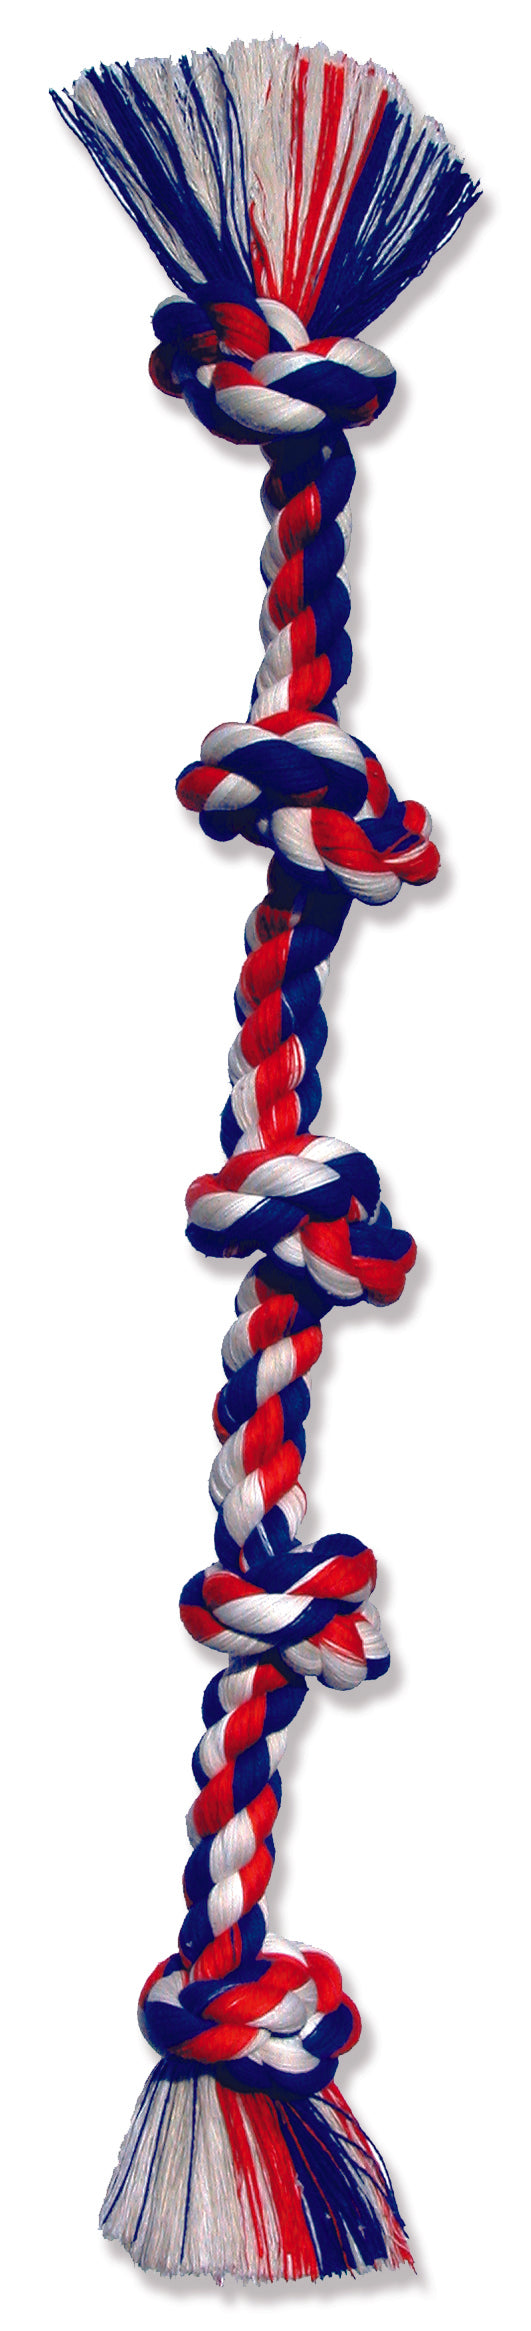 Mammoth Flossy Chews 5 knot Tugs Color Rope X-Large Dog Toys 36 Inch